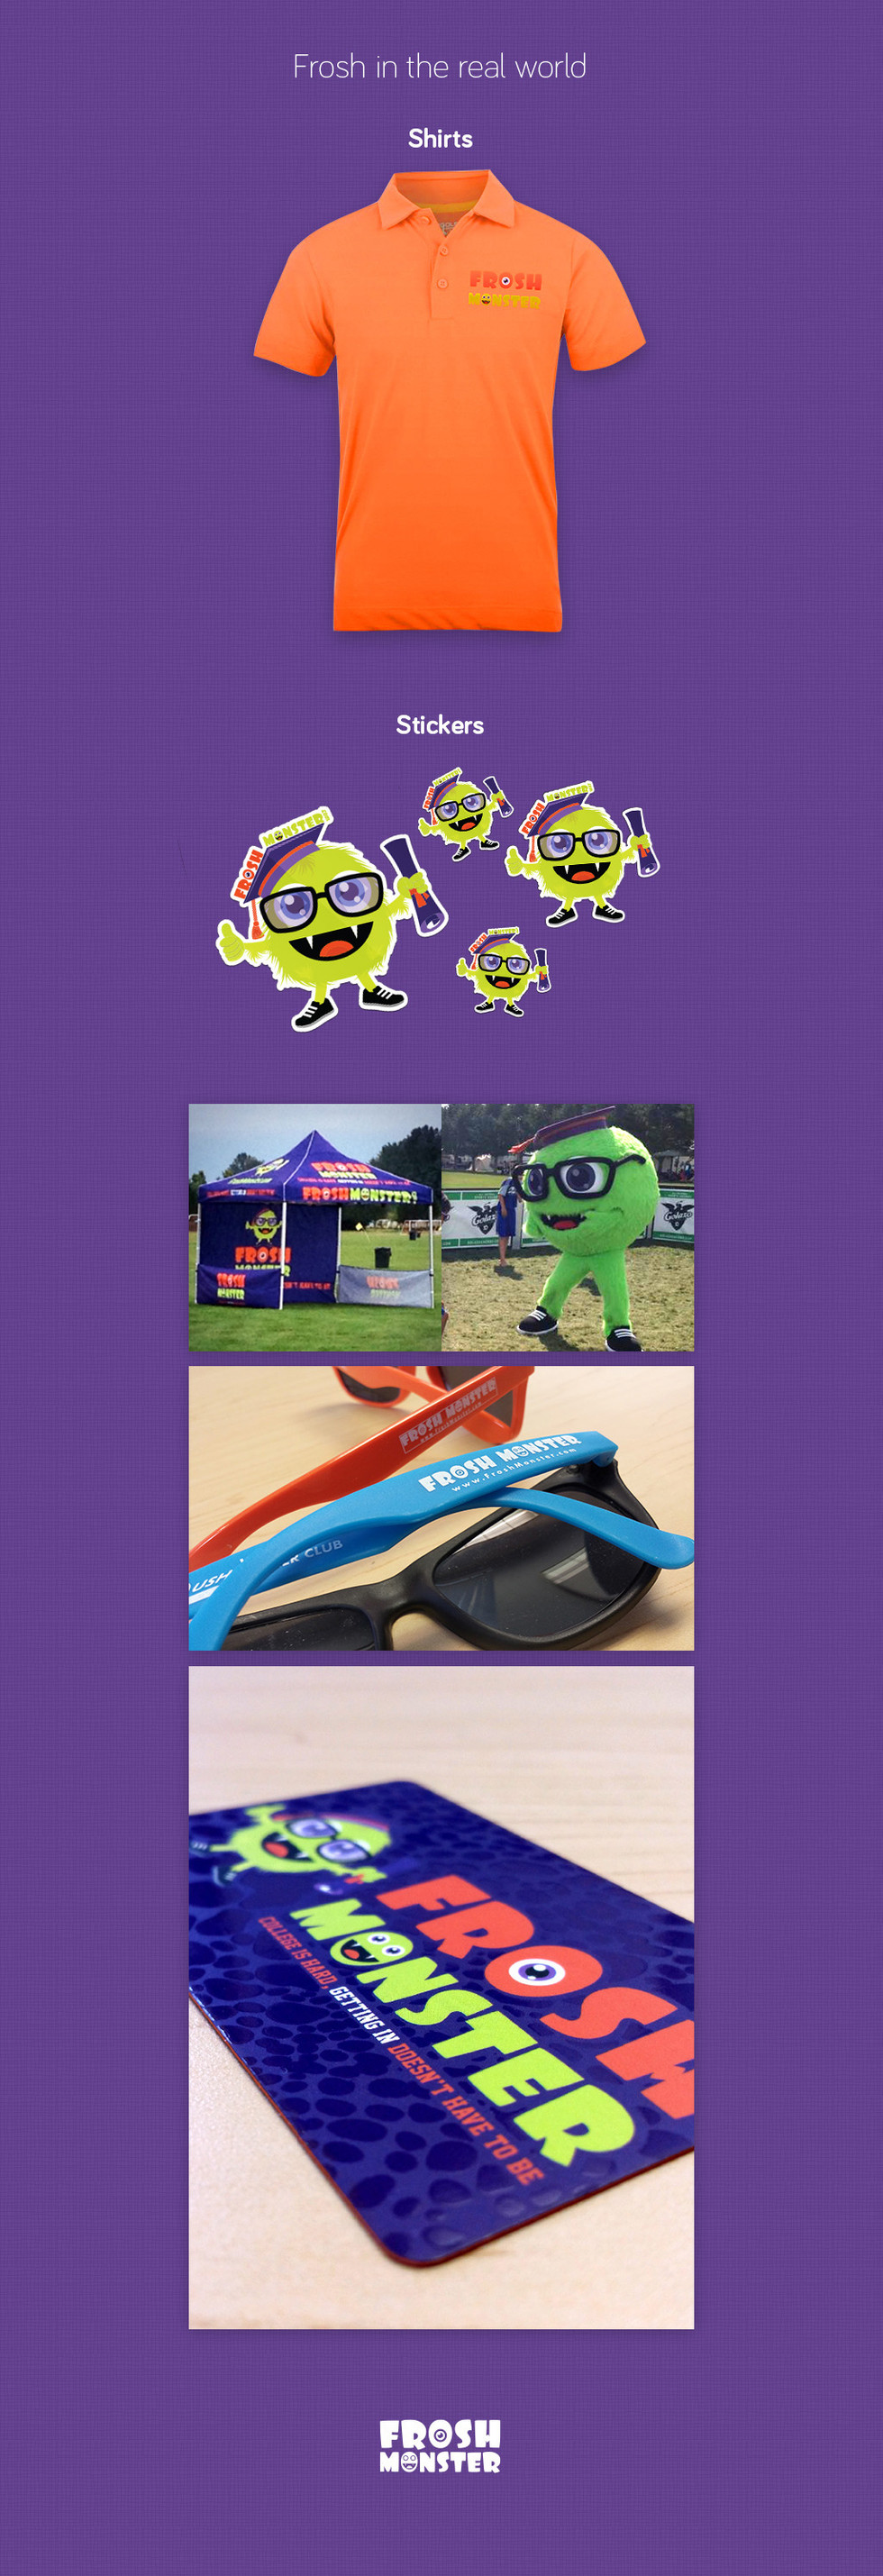 Frosh Monster Accessories and Promotional Assets